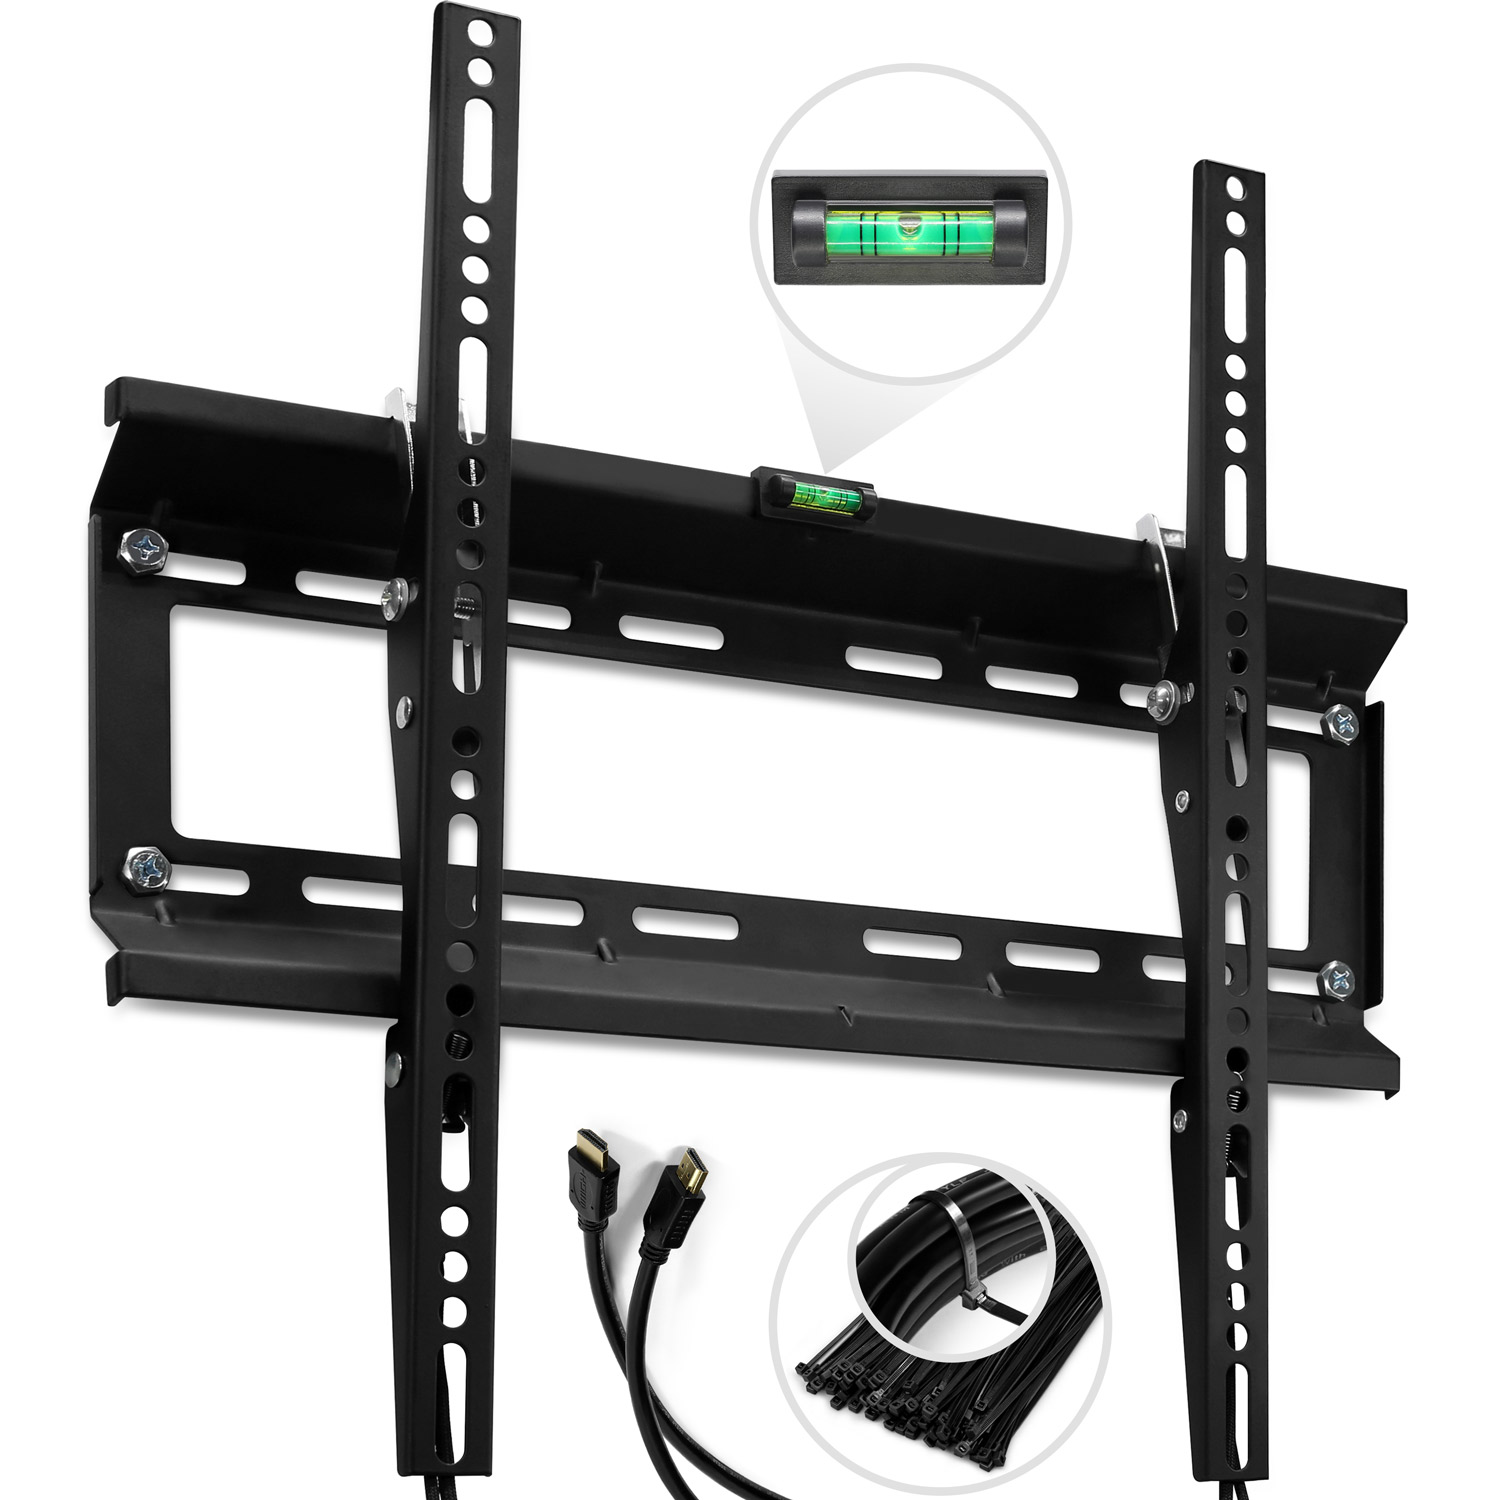 "TV Wall Mount Bracket for 20 - 47"" Support 120 lbs - 400x400 mm VESA Compliant"